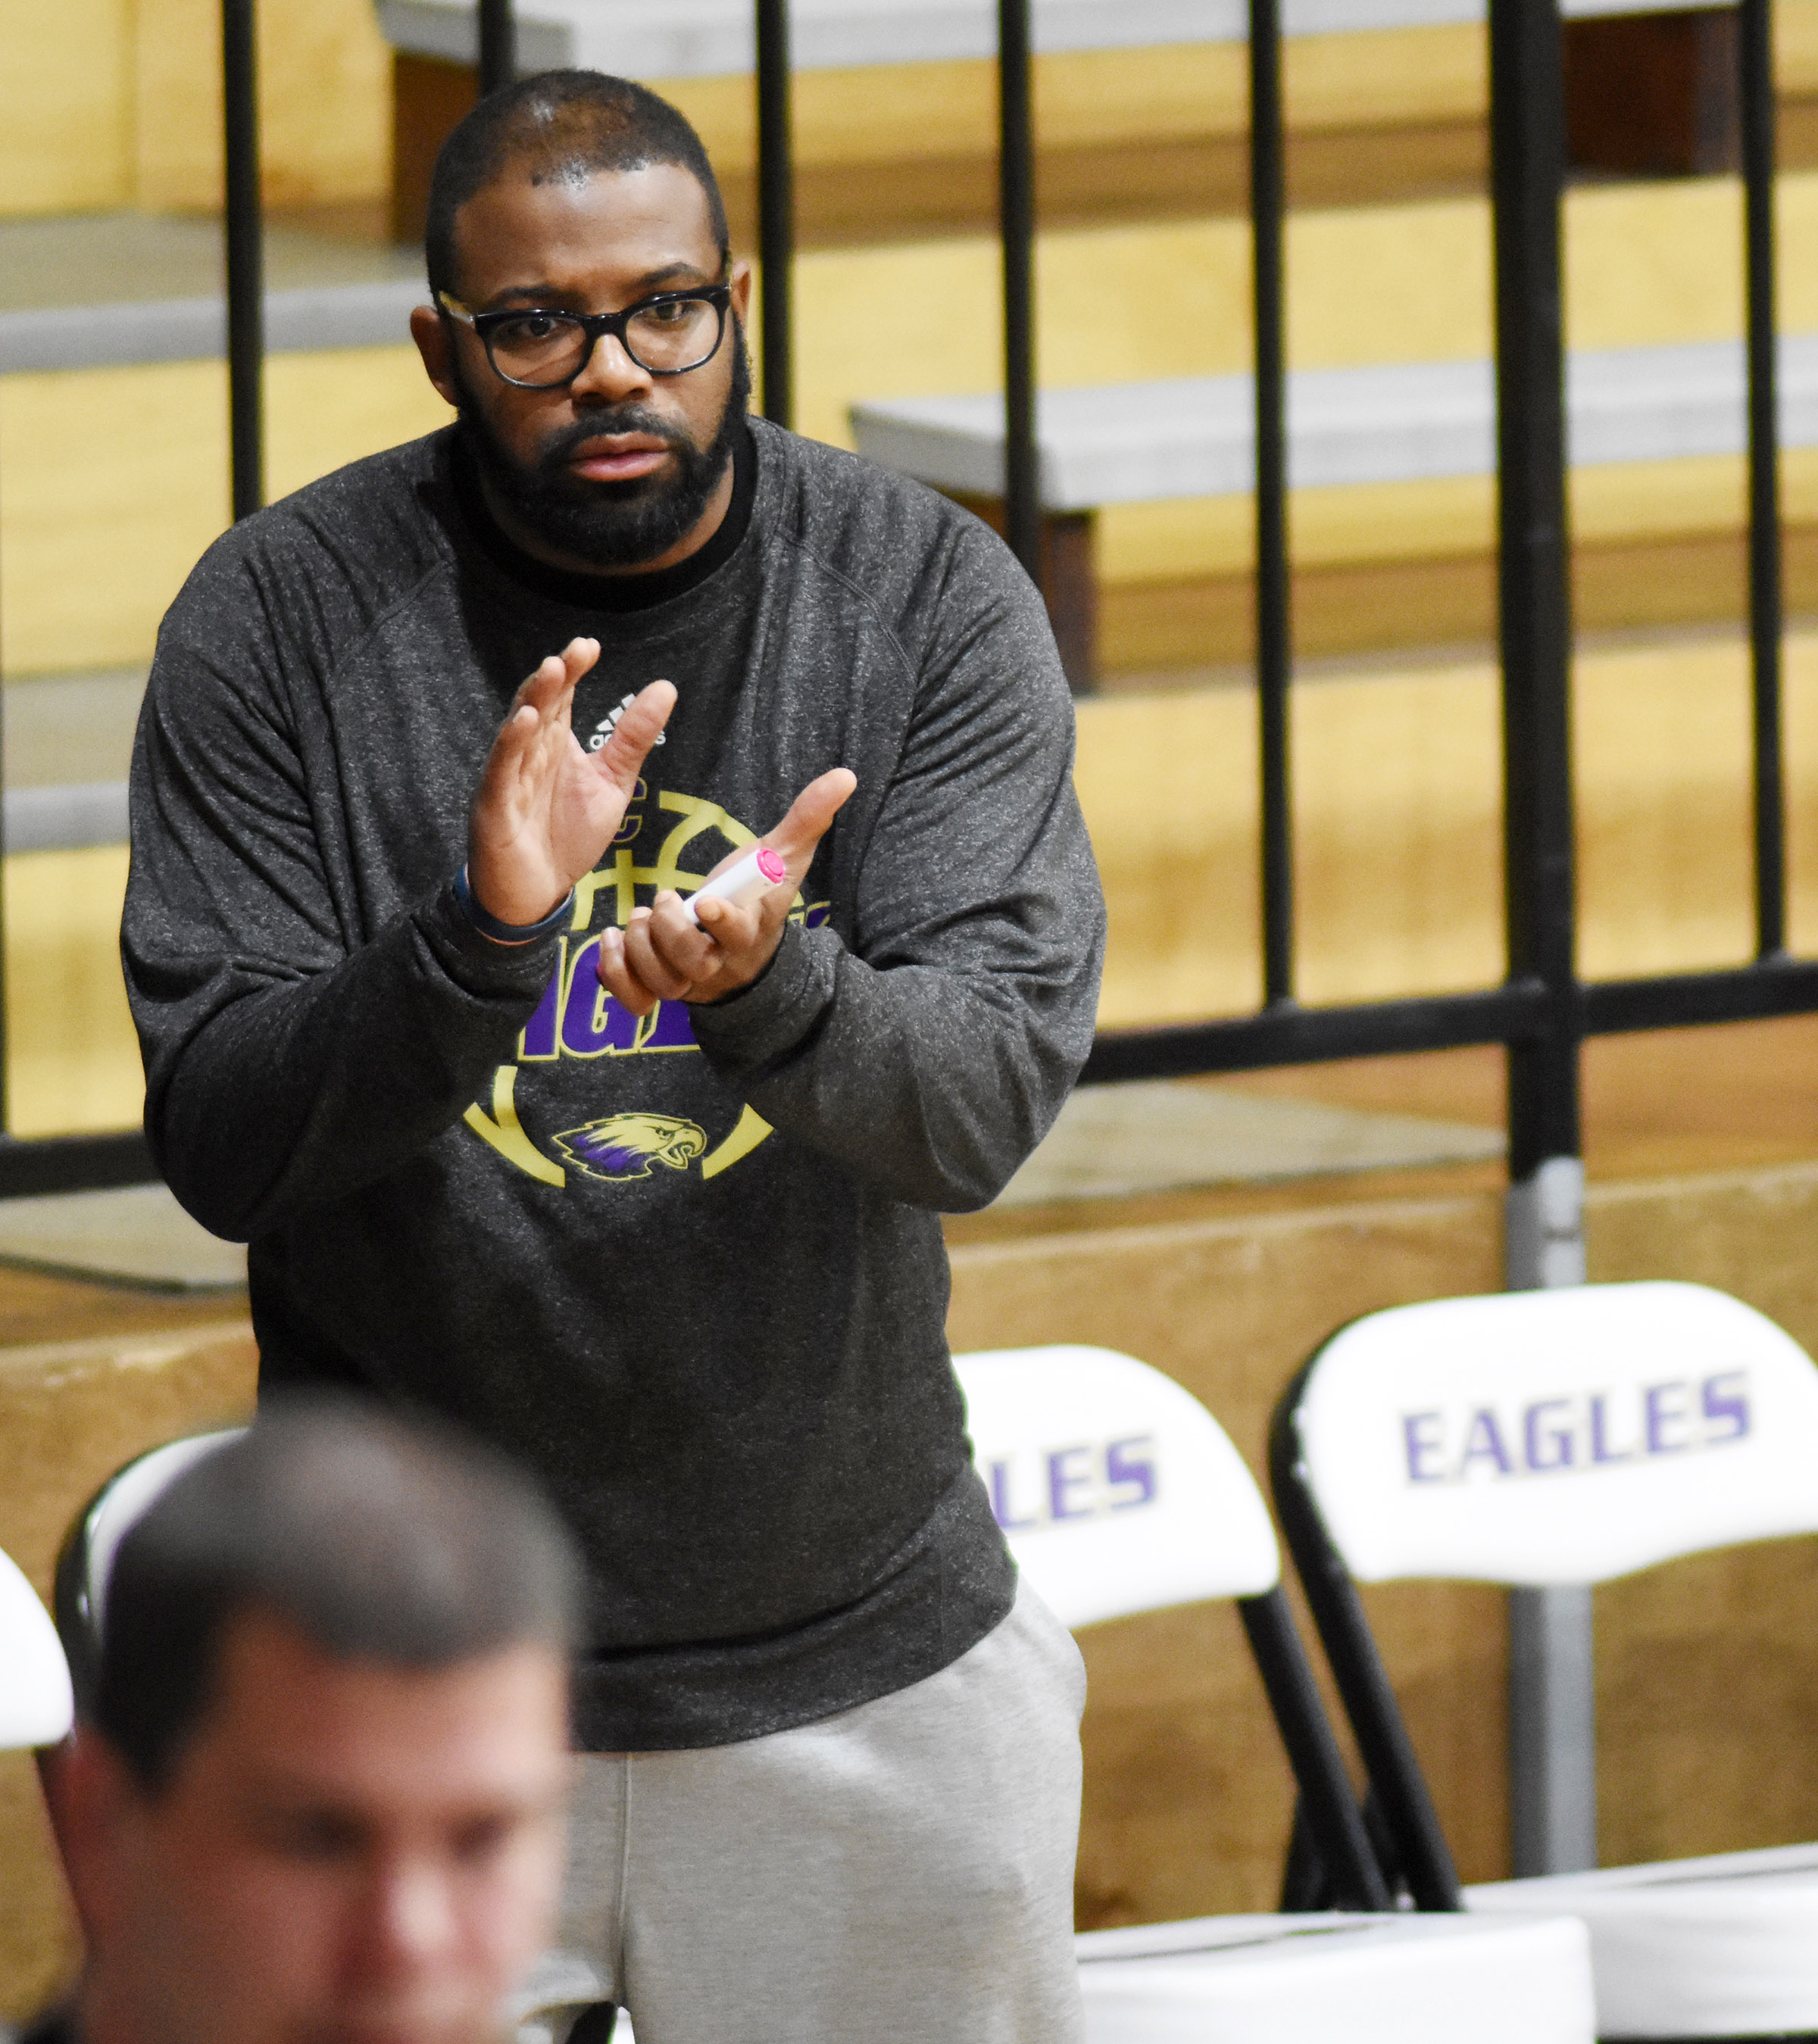 CHS boys' basketball assistant coach Will Griffin cheers for his team.